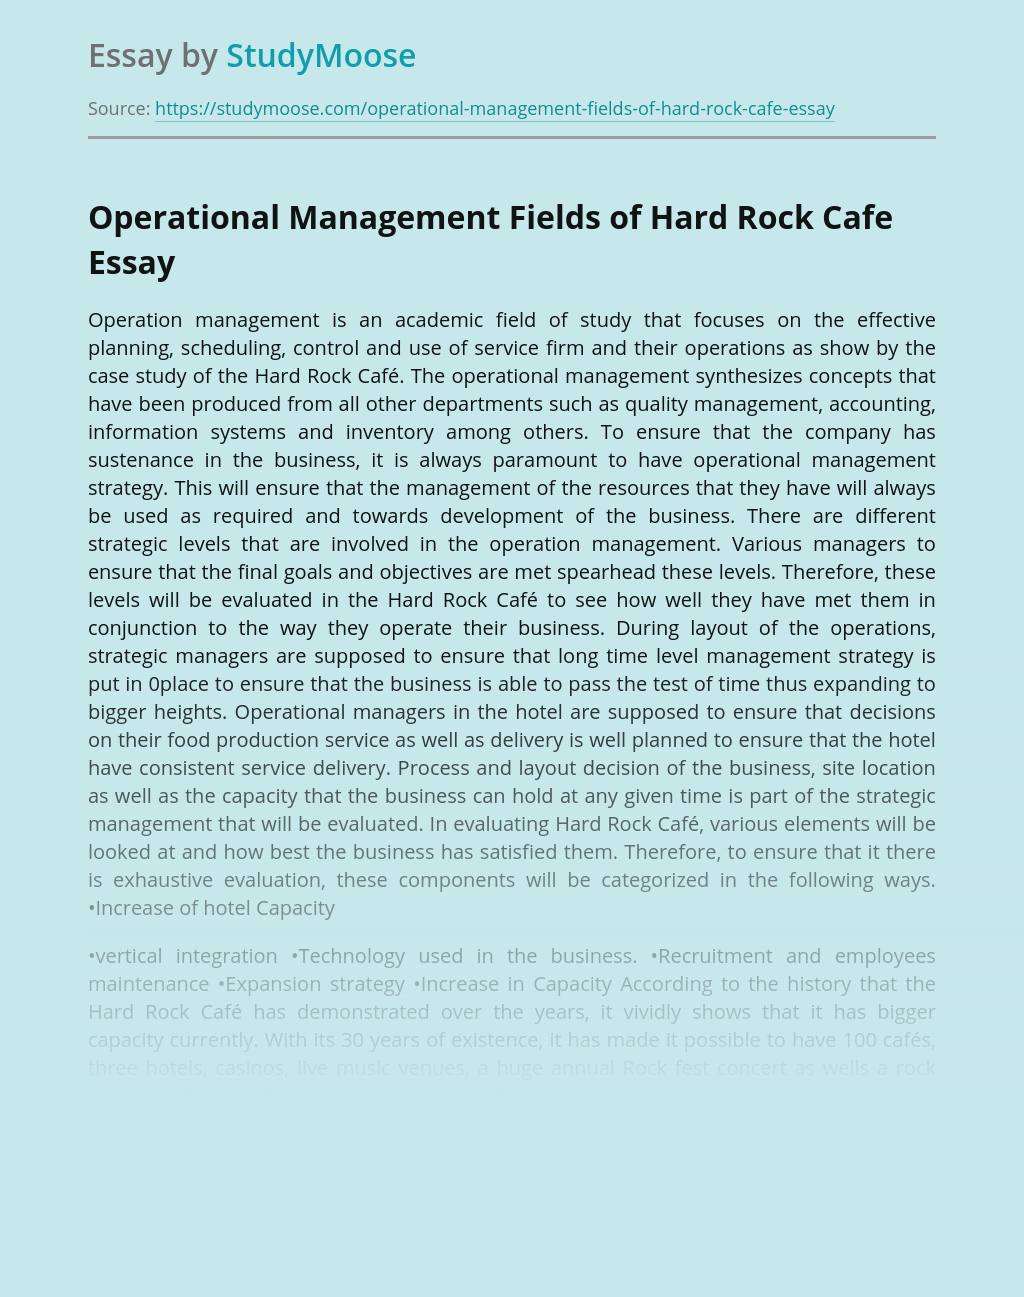 Operational Management Fields of Hard Rock Cafe